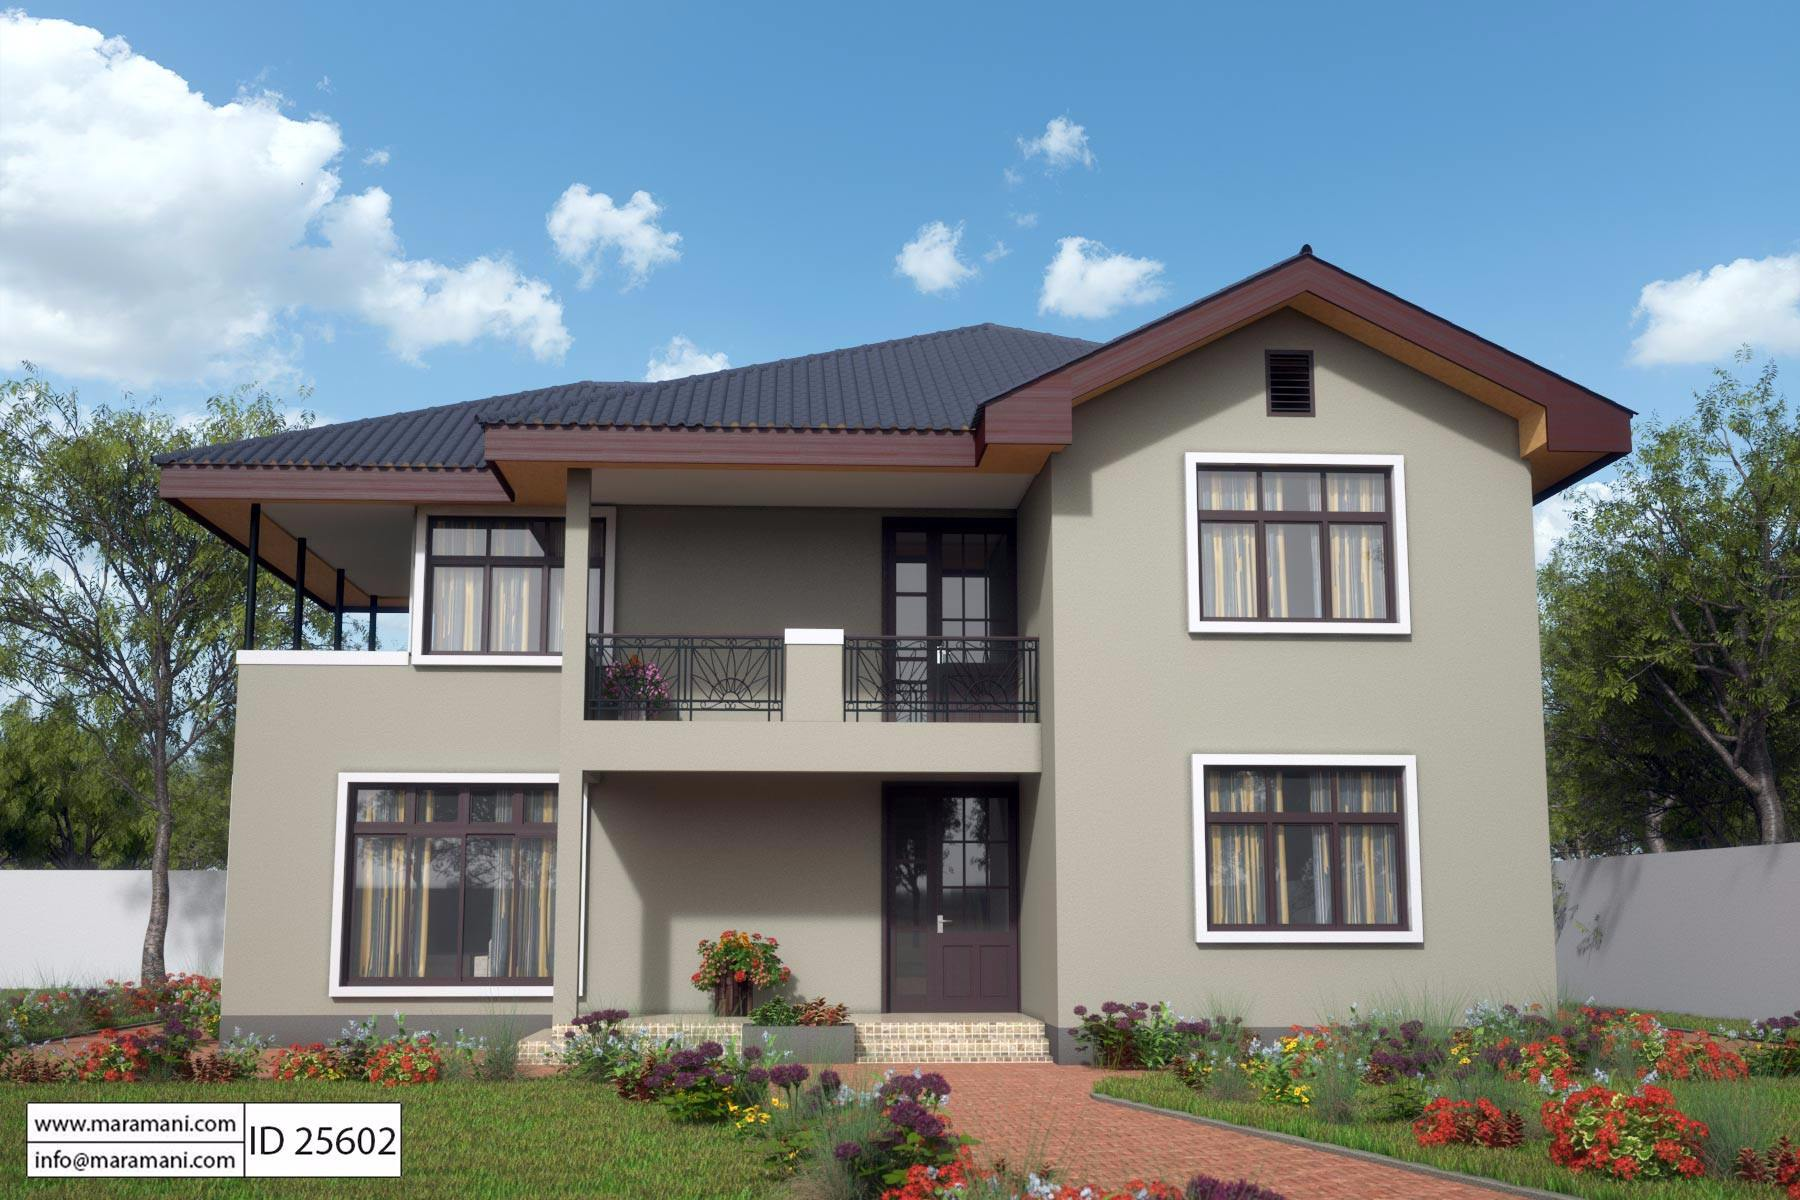 5 Bedroom House Design Id 25602 House Plans By Maramani